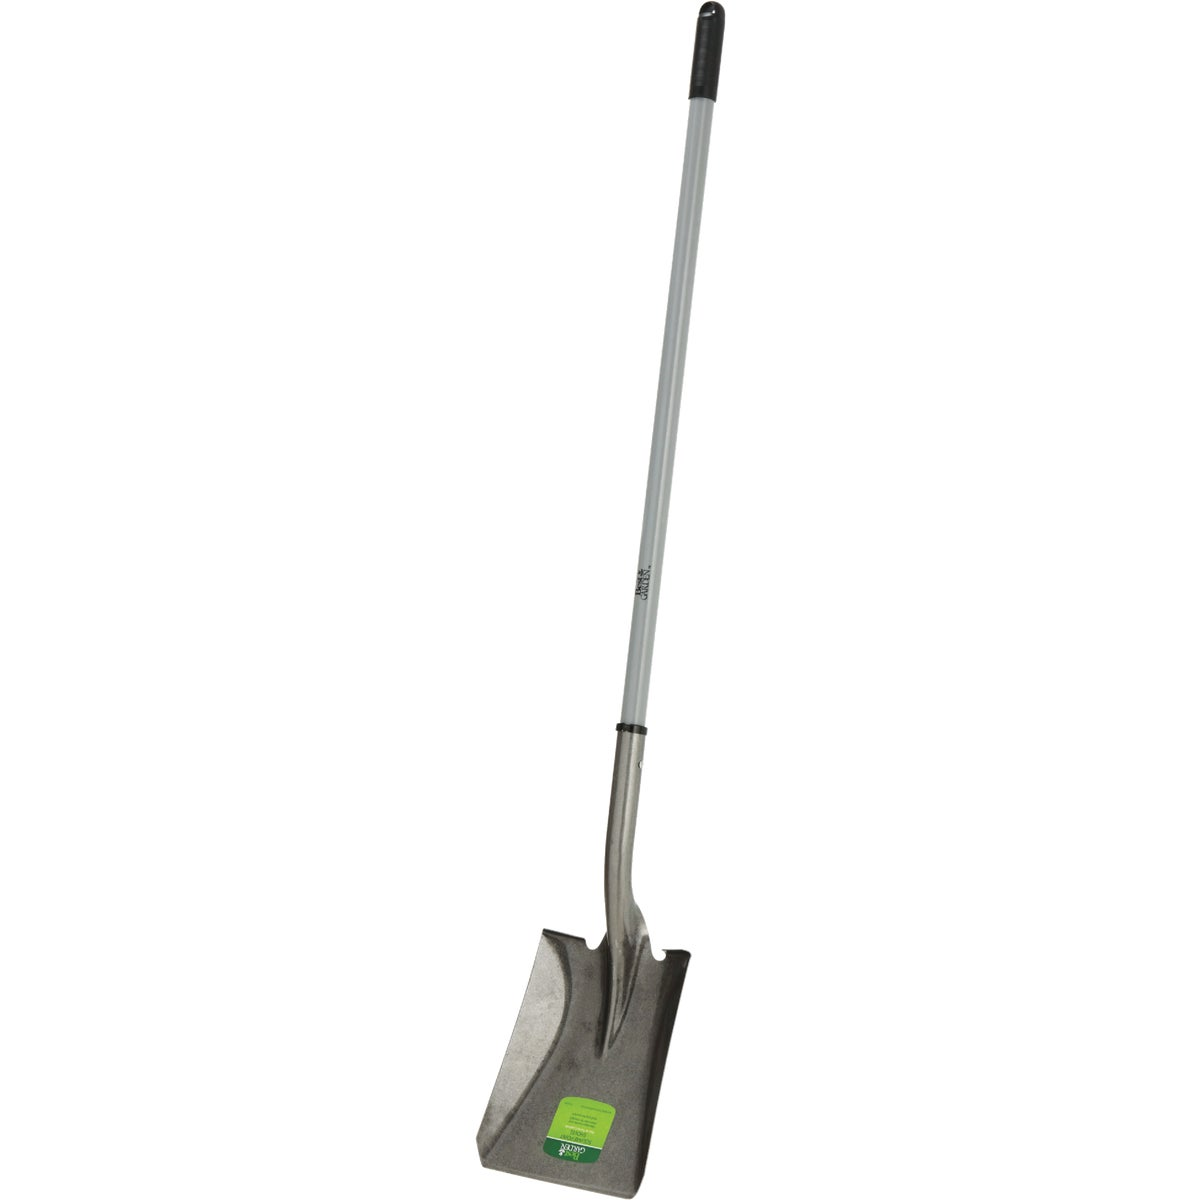 FBGL HDL SQ PT SHOVEL - 761615 by Do it Best